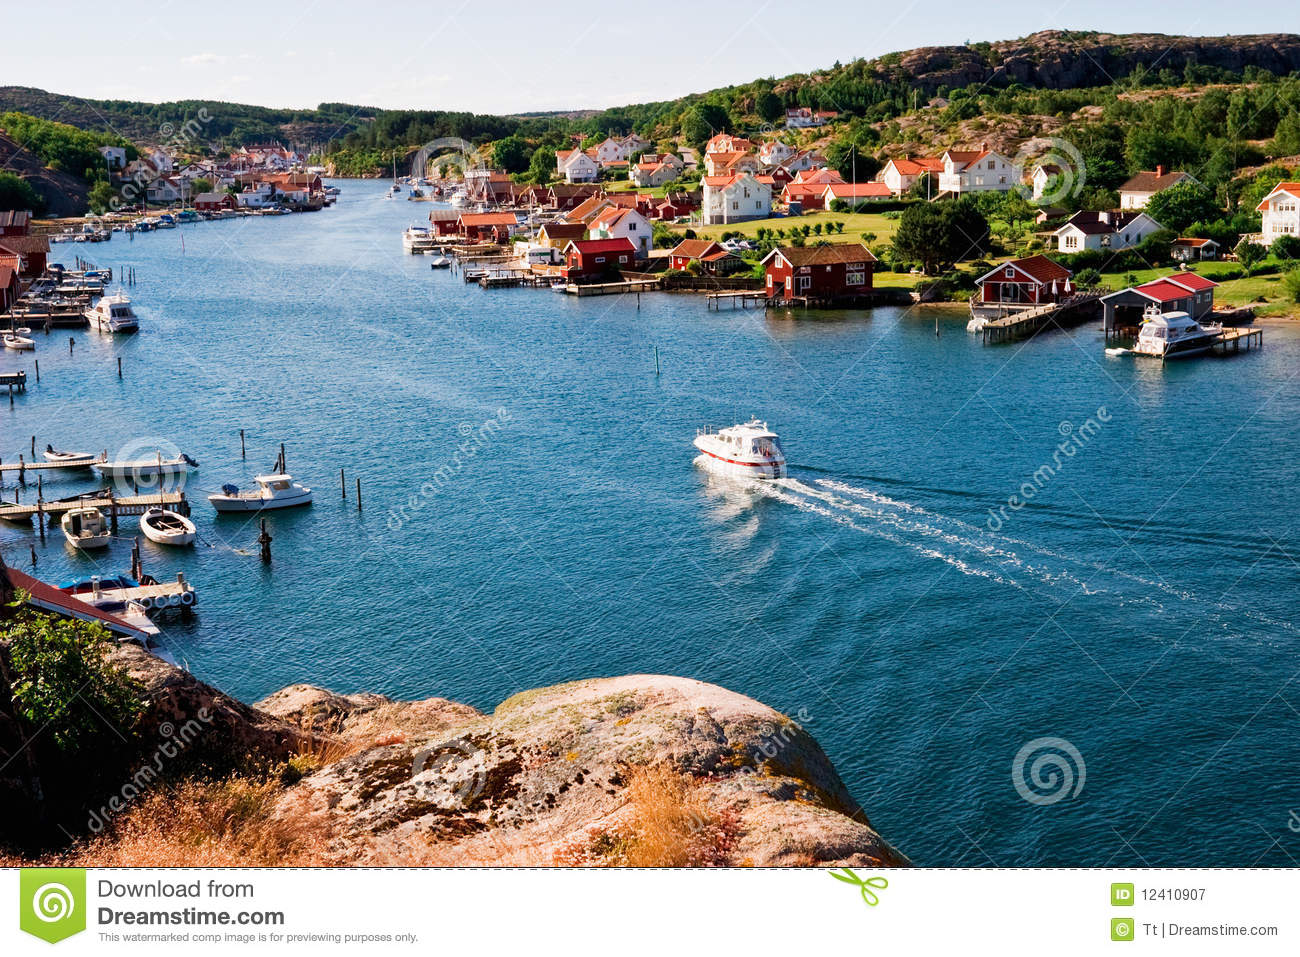 Royalty Free Stock Photography: Old fishing village: bfz.biz/tag/old-fishing-villages